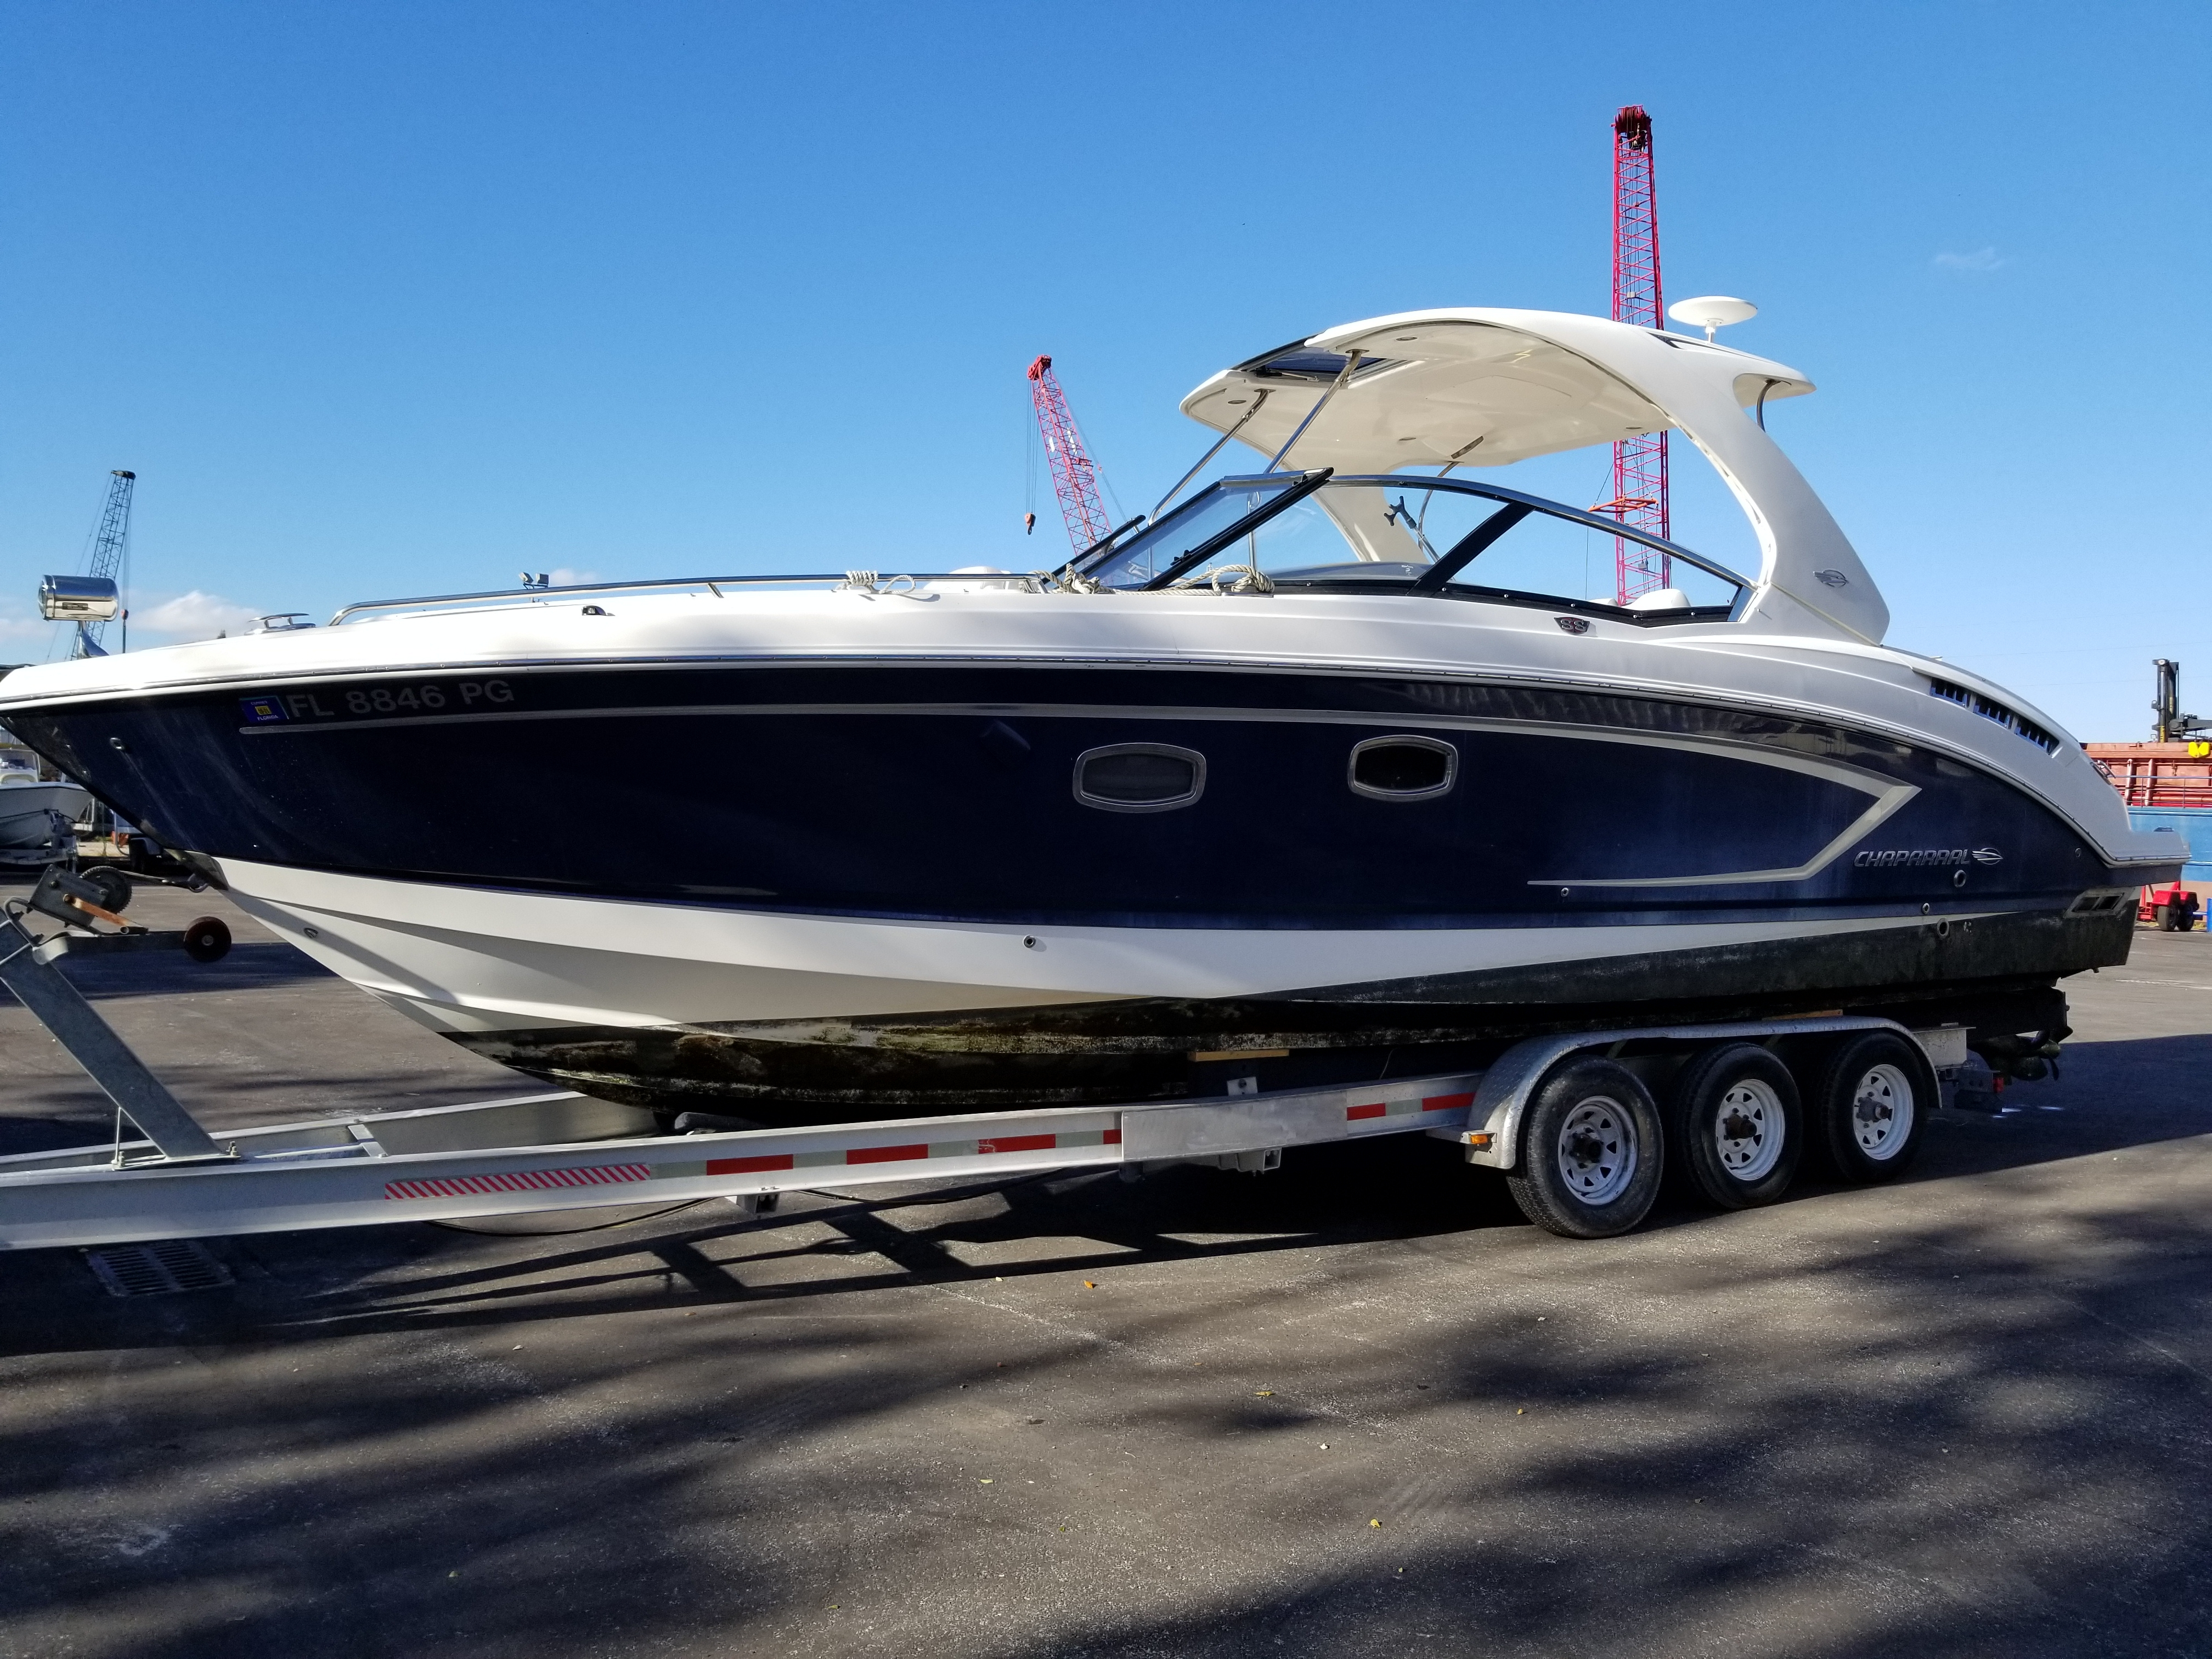 2012 Chapparal 327 SSX - $65,000